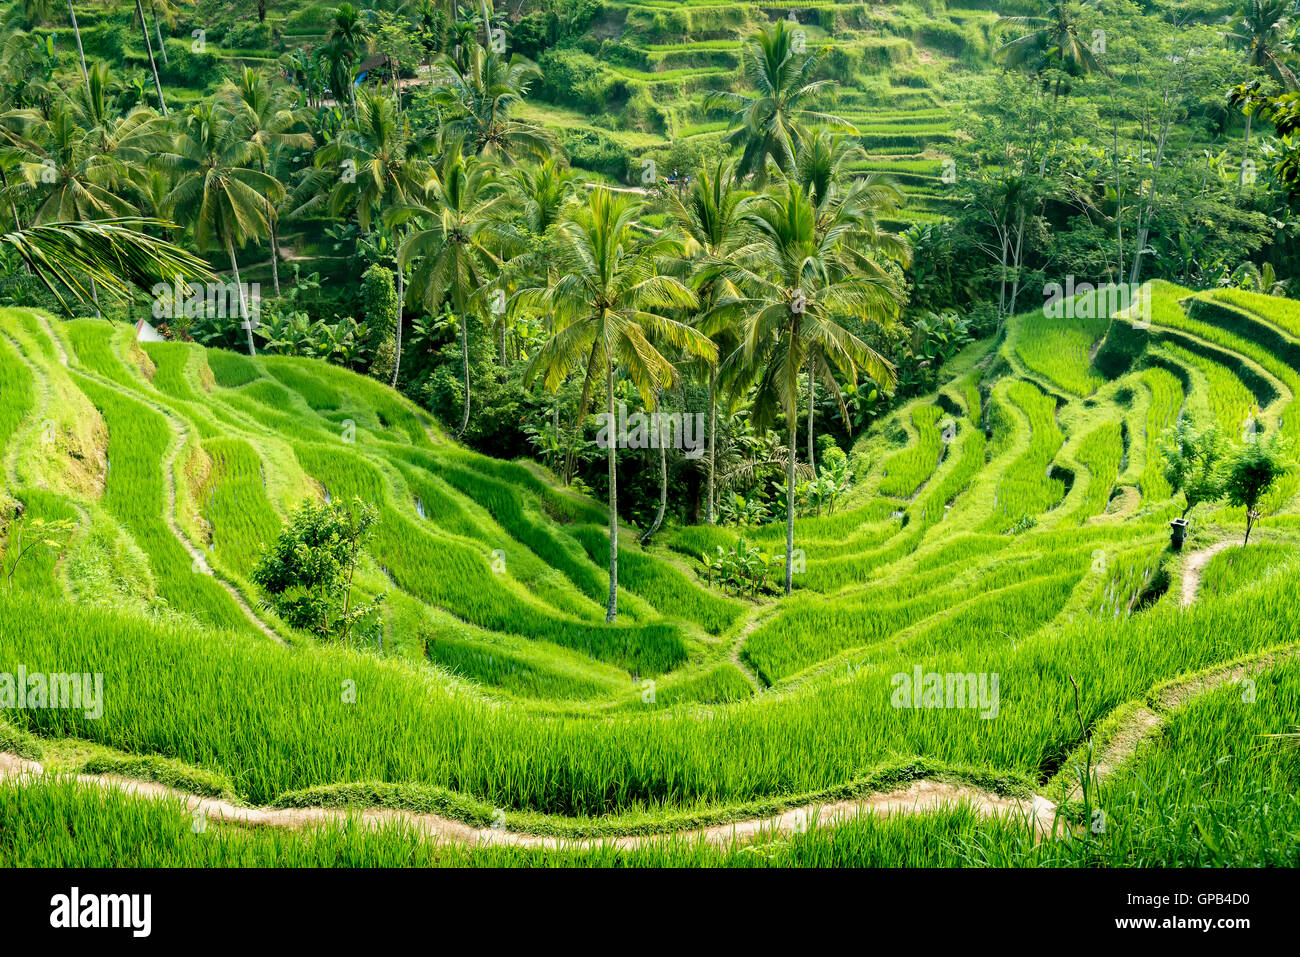 Famous attraction of Ubud - The Tegallalang  Rice Terraces in Bali, Indonesia - Stock Image